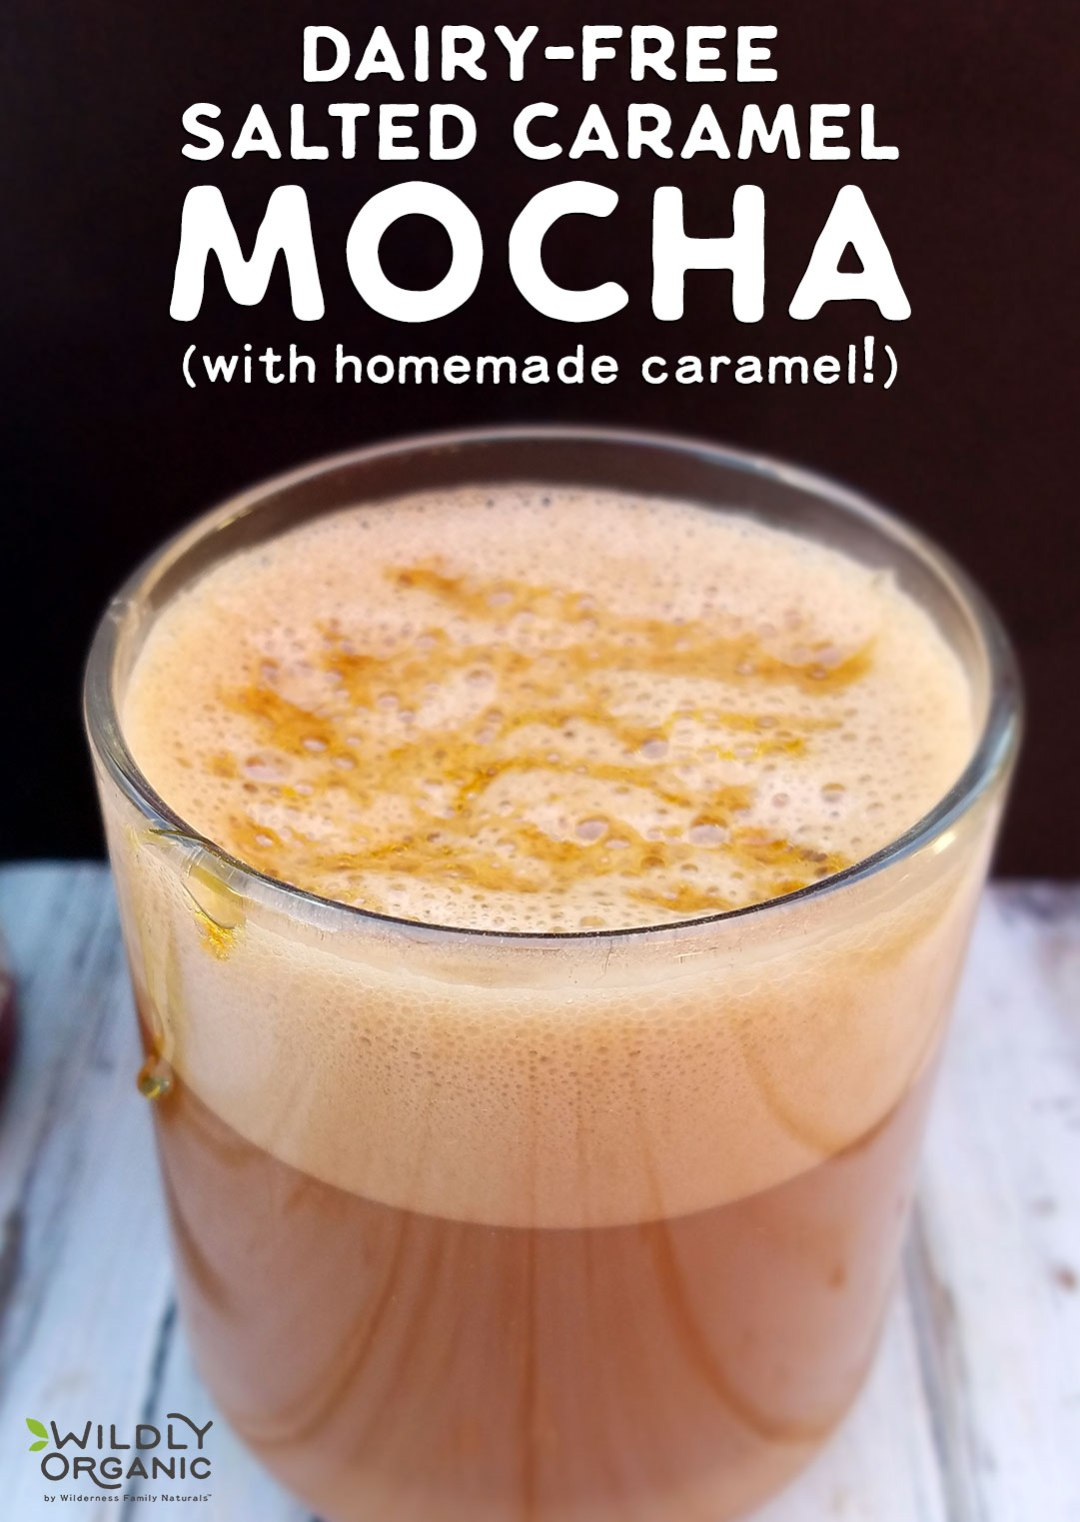 Those fancy coffee drinks... They sure are delicious, but they're not health-friendly, budget-friendly, or figure-friendly, are they? It's easy to make your own! A Dairy-Free Salted Caramel Mocha boasts sweet flavor of caramel, combined with hot coffee, freshly whipped cream, and a salty finish. It's irresistible!